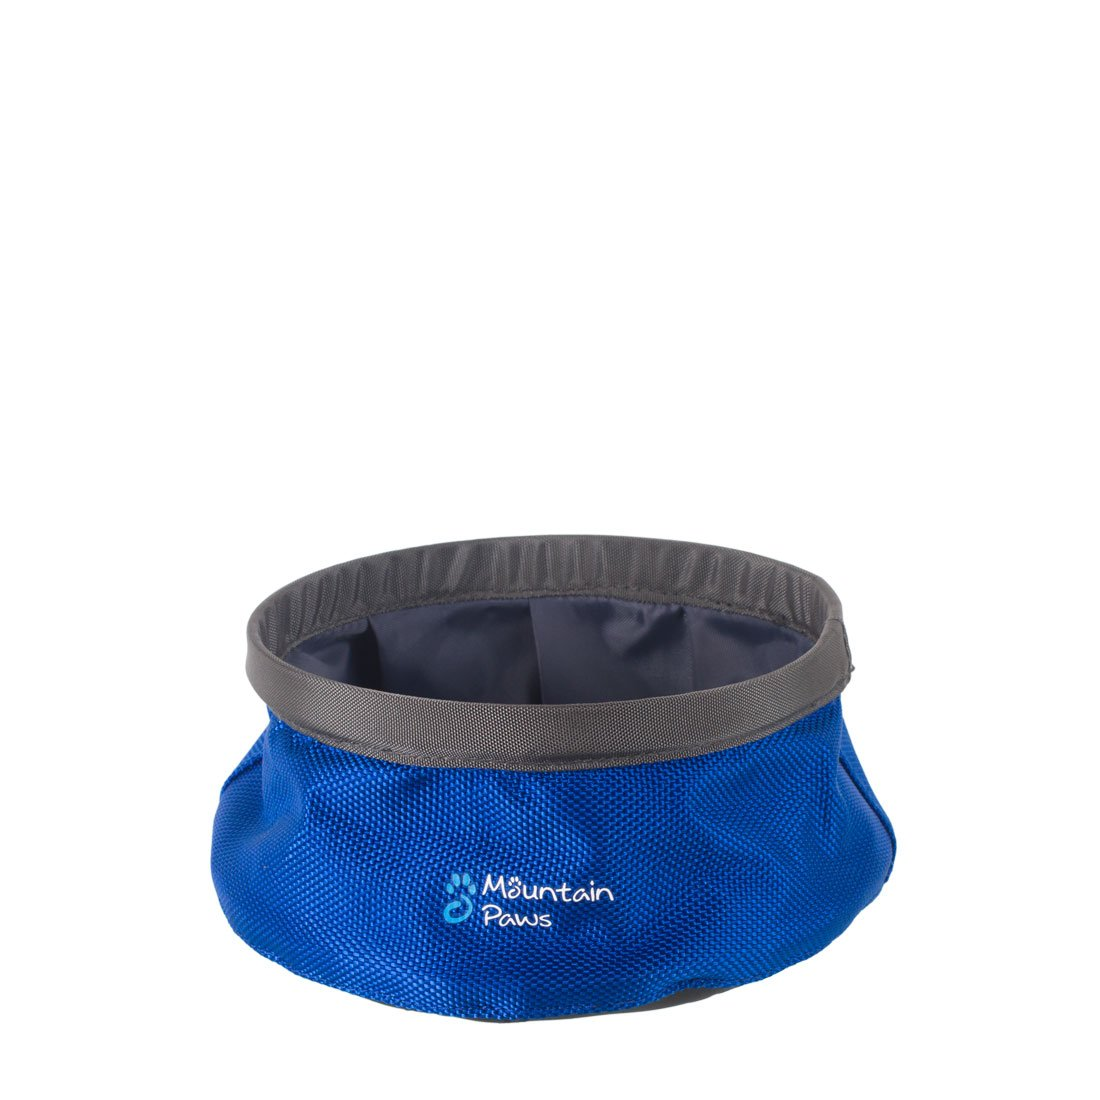 Blue Dog Water Bowl Collapsible Dog Bowls Mountain